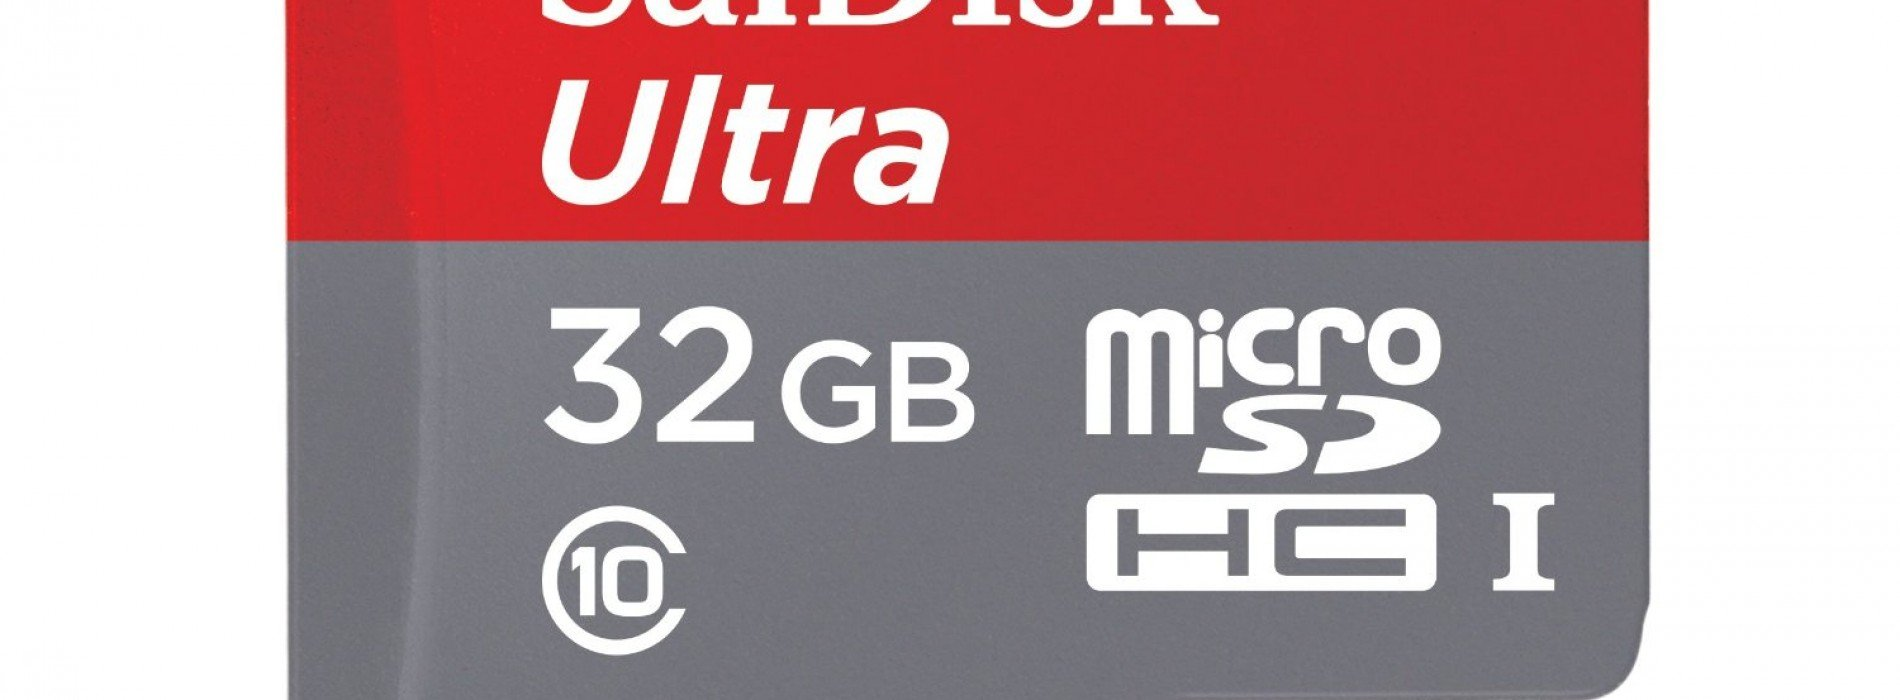 Accessory of the Day: SanDisk Ultra 32GB MicroSDHC Class 10 UHS Memory Card [74% OFF]